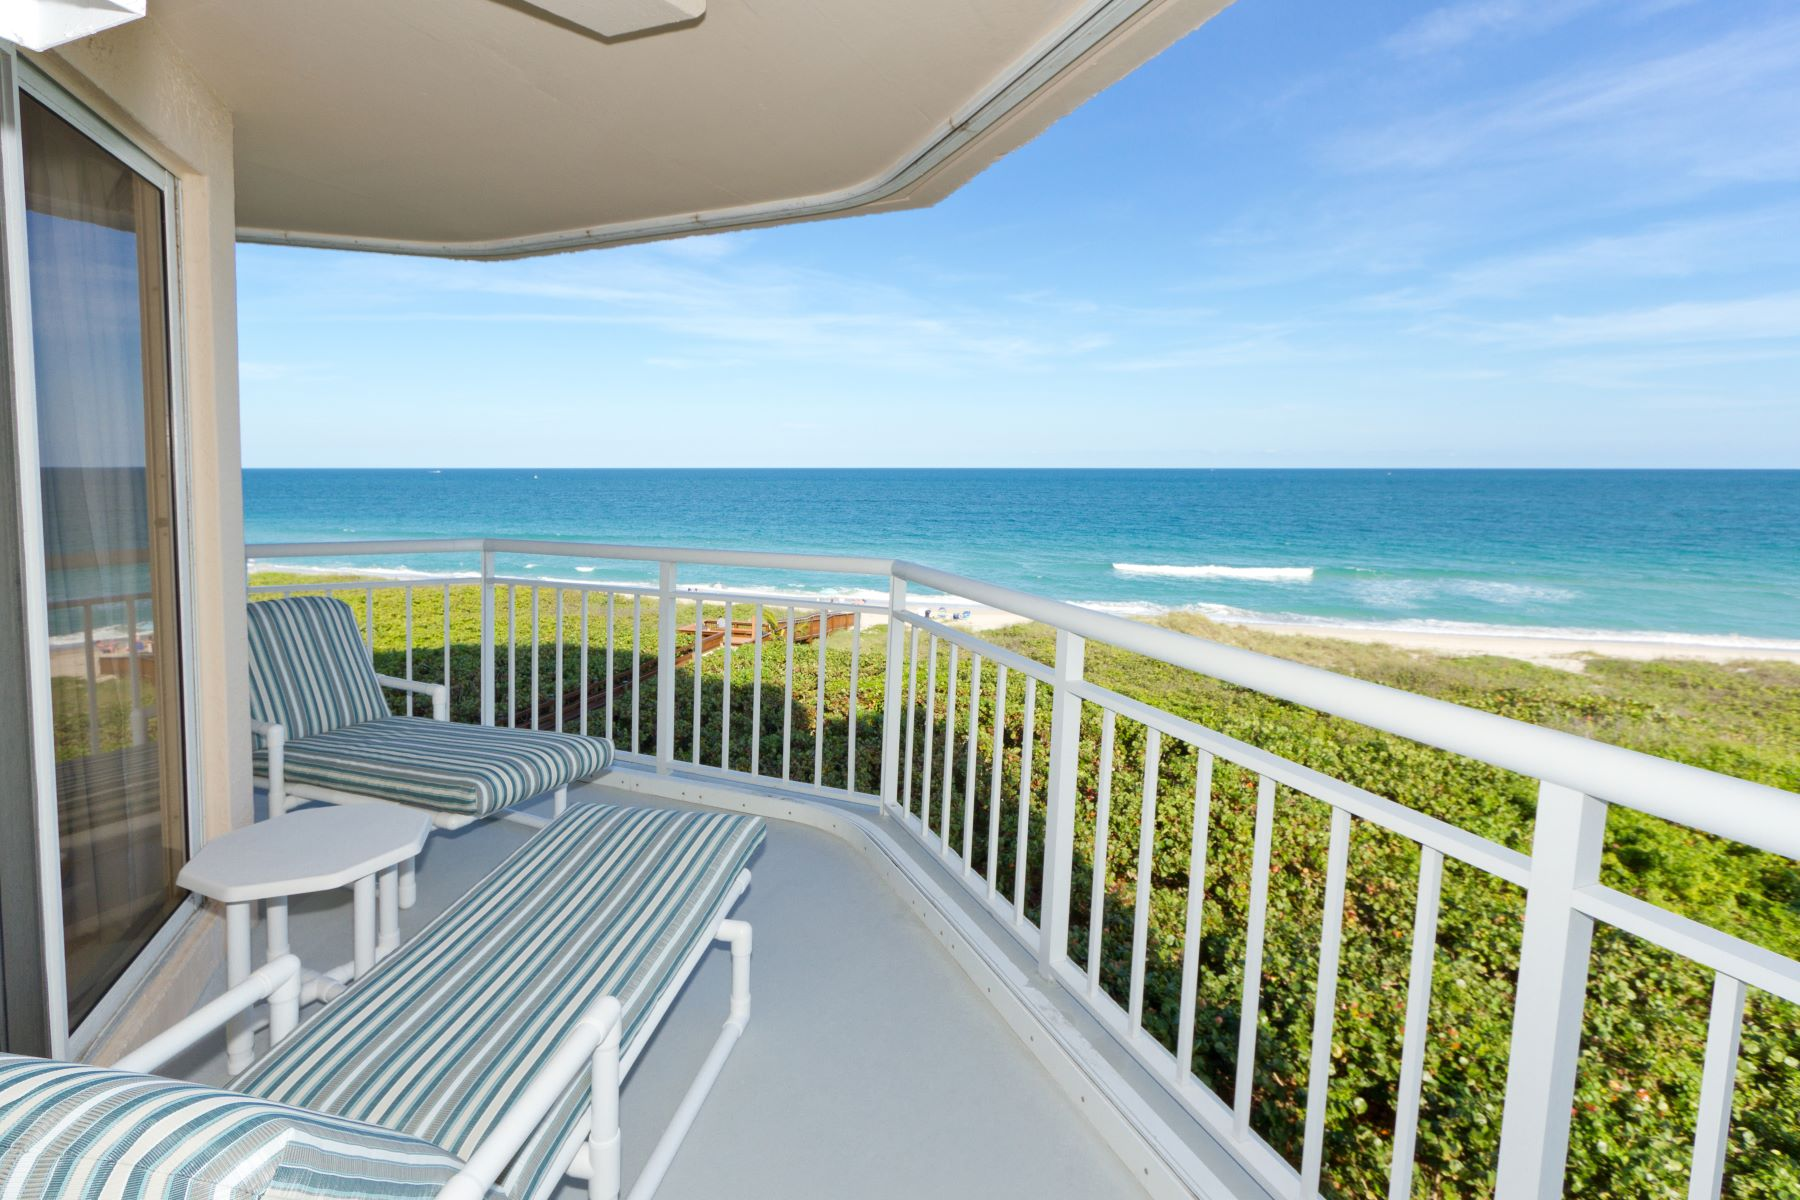 Condominiums 为 销售 在 Carefree Beachfront Living with Picture Perfect Ocean Views! 3870 N Highway A1A 504, 哈钦森岛, 佛罗里达州 34949 美国